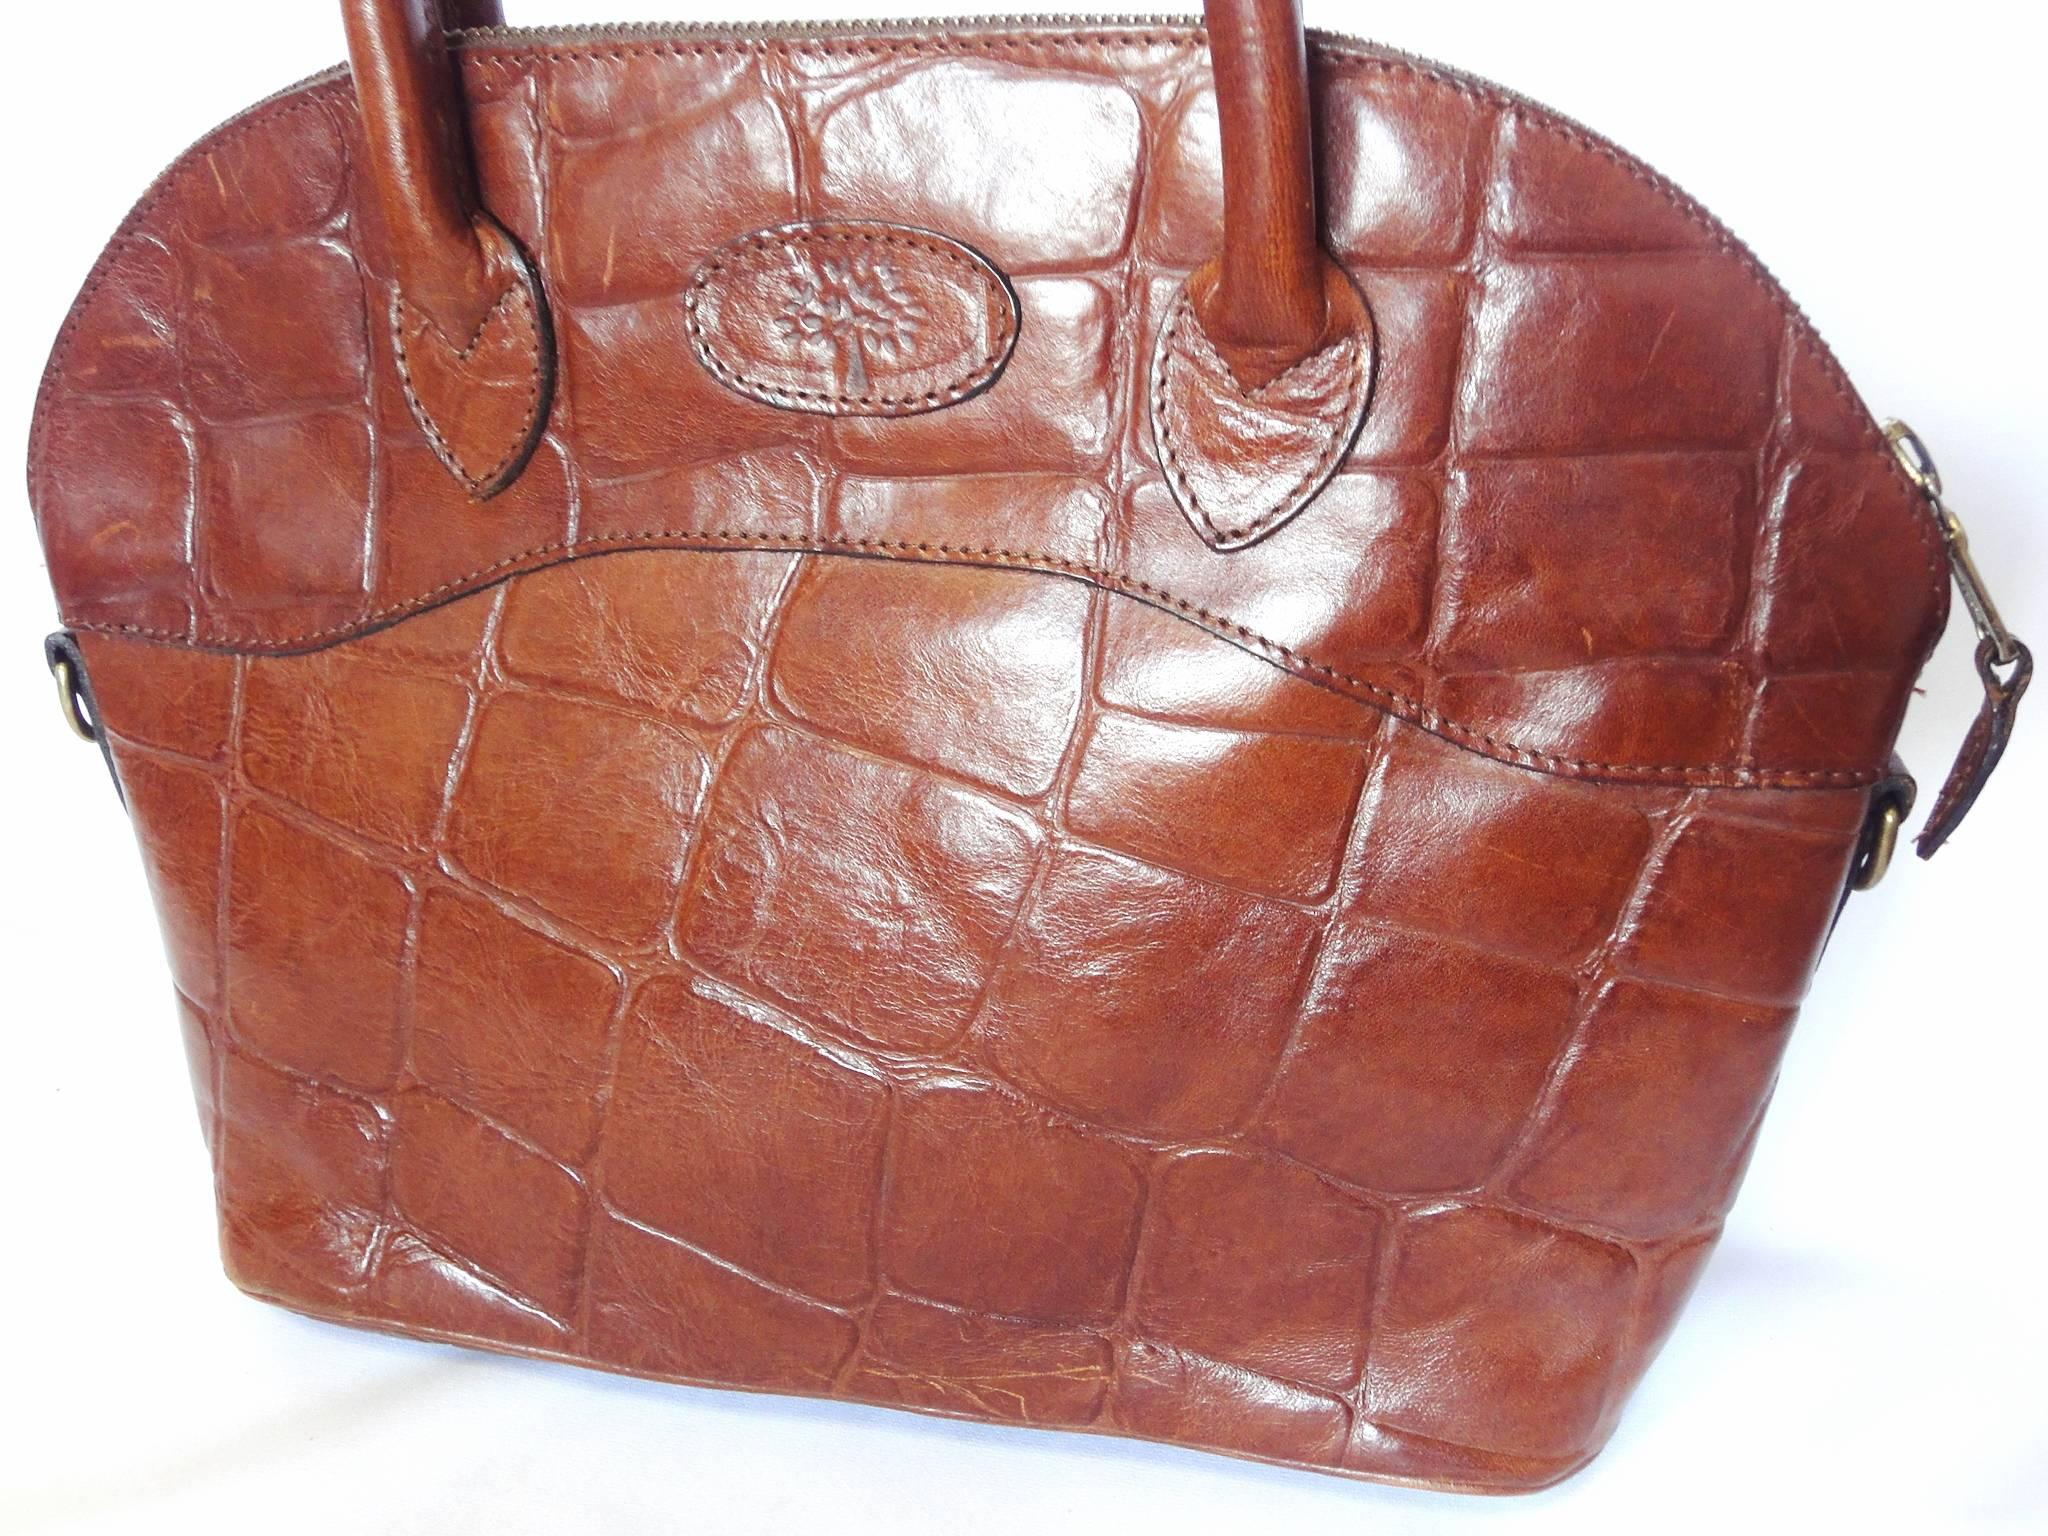 f1b8a26f2013 ... closeout vintage mulberry croc embossed brown leather tote bag in bolide  bag style. at 1stdibs